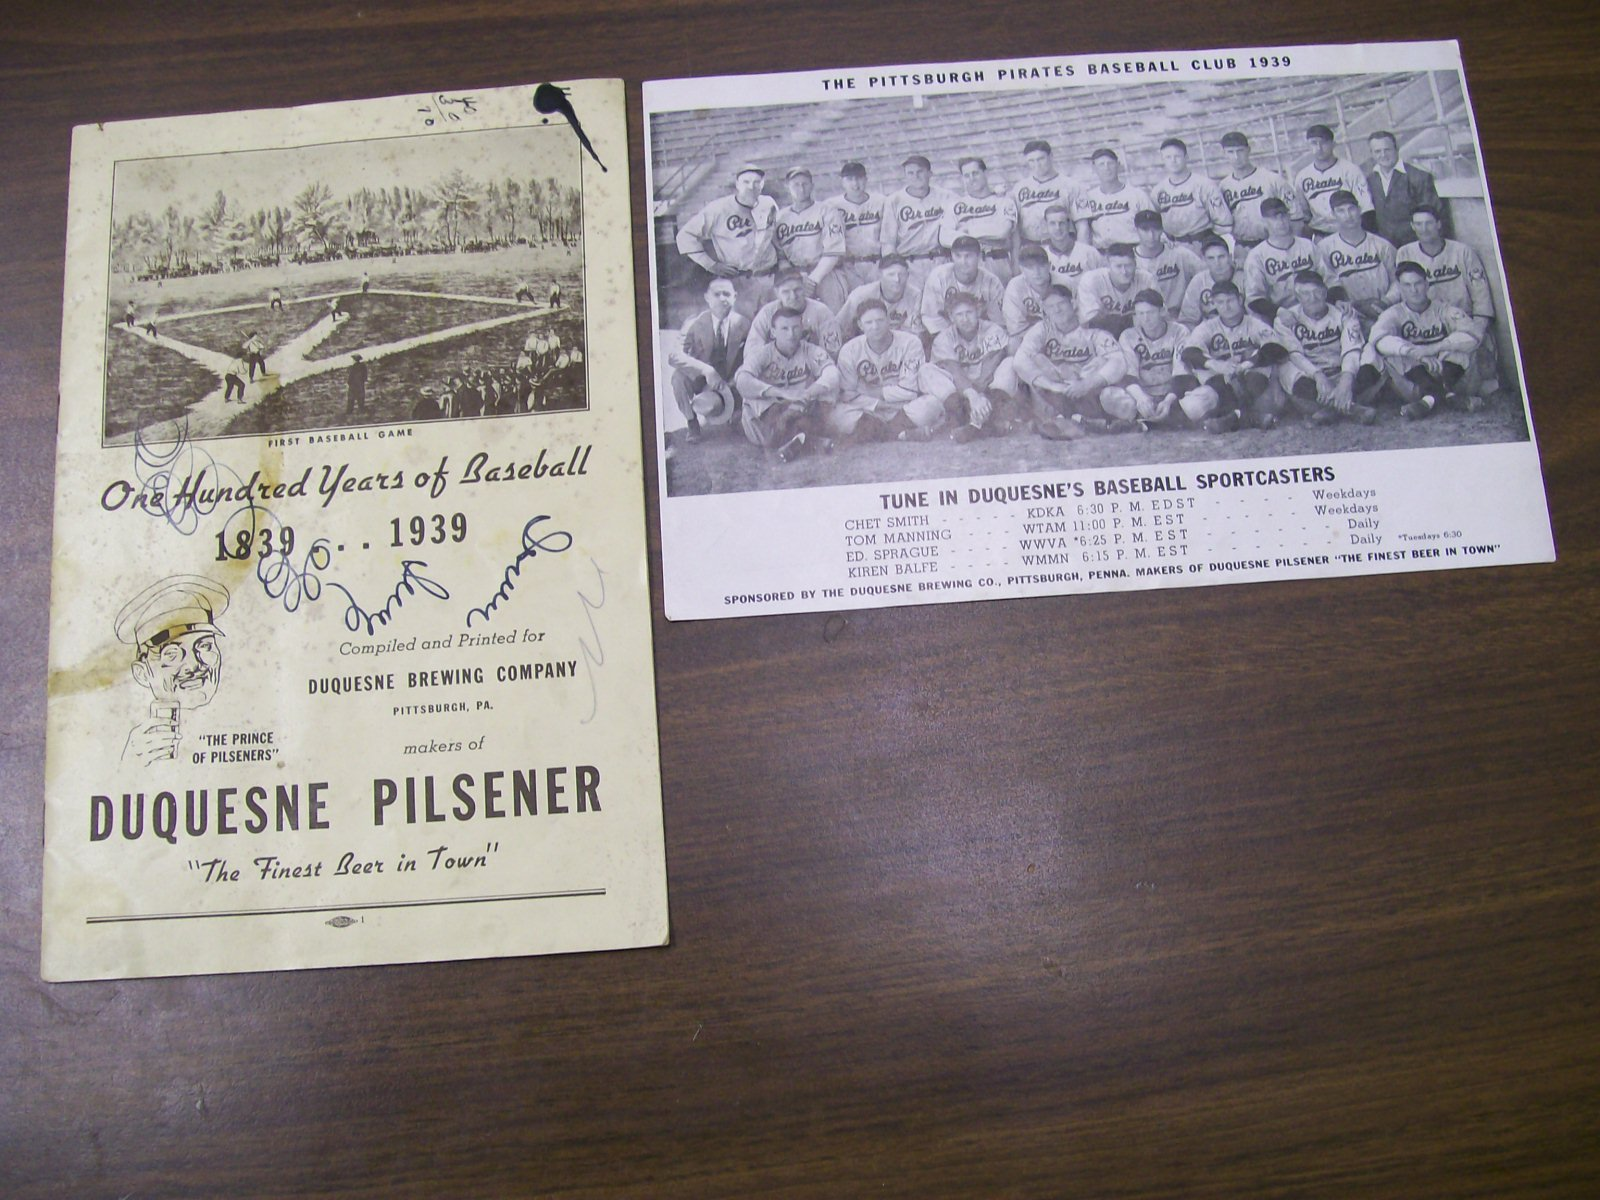 ONE HUNDRED YEARS OF BASEBALL 1939 PIRATE TEAM PHOTO-RARE